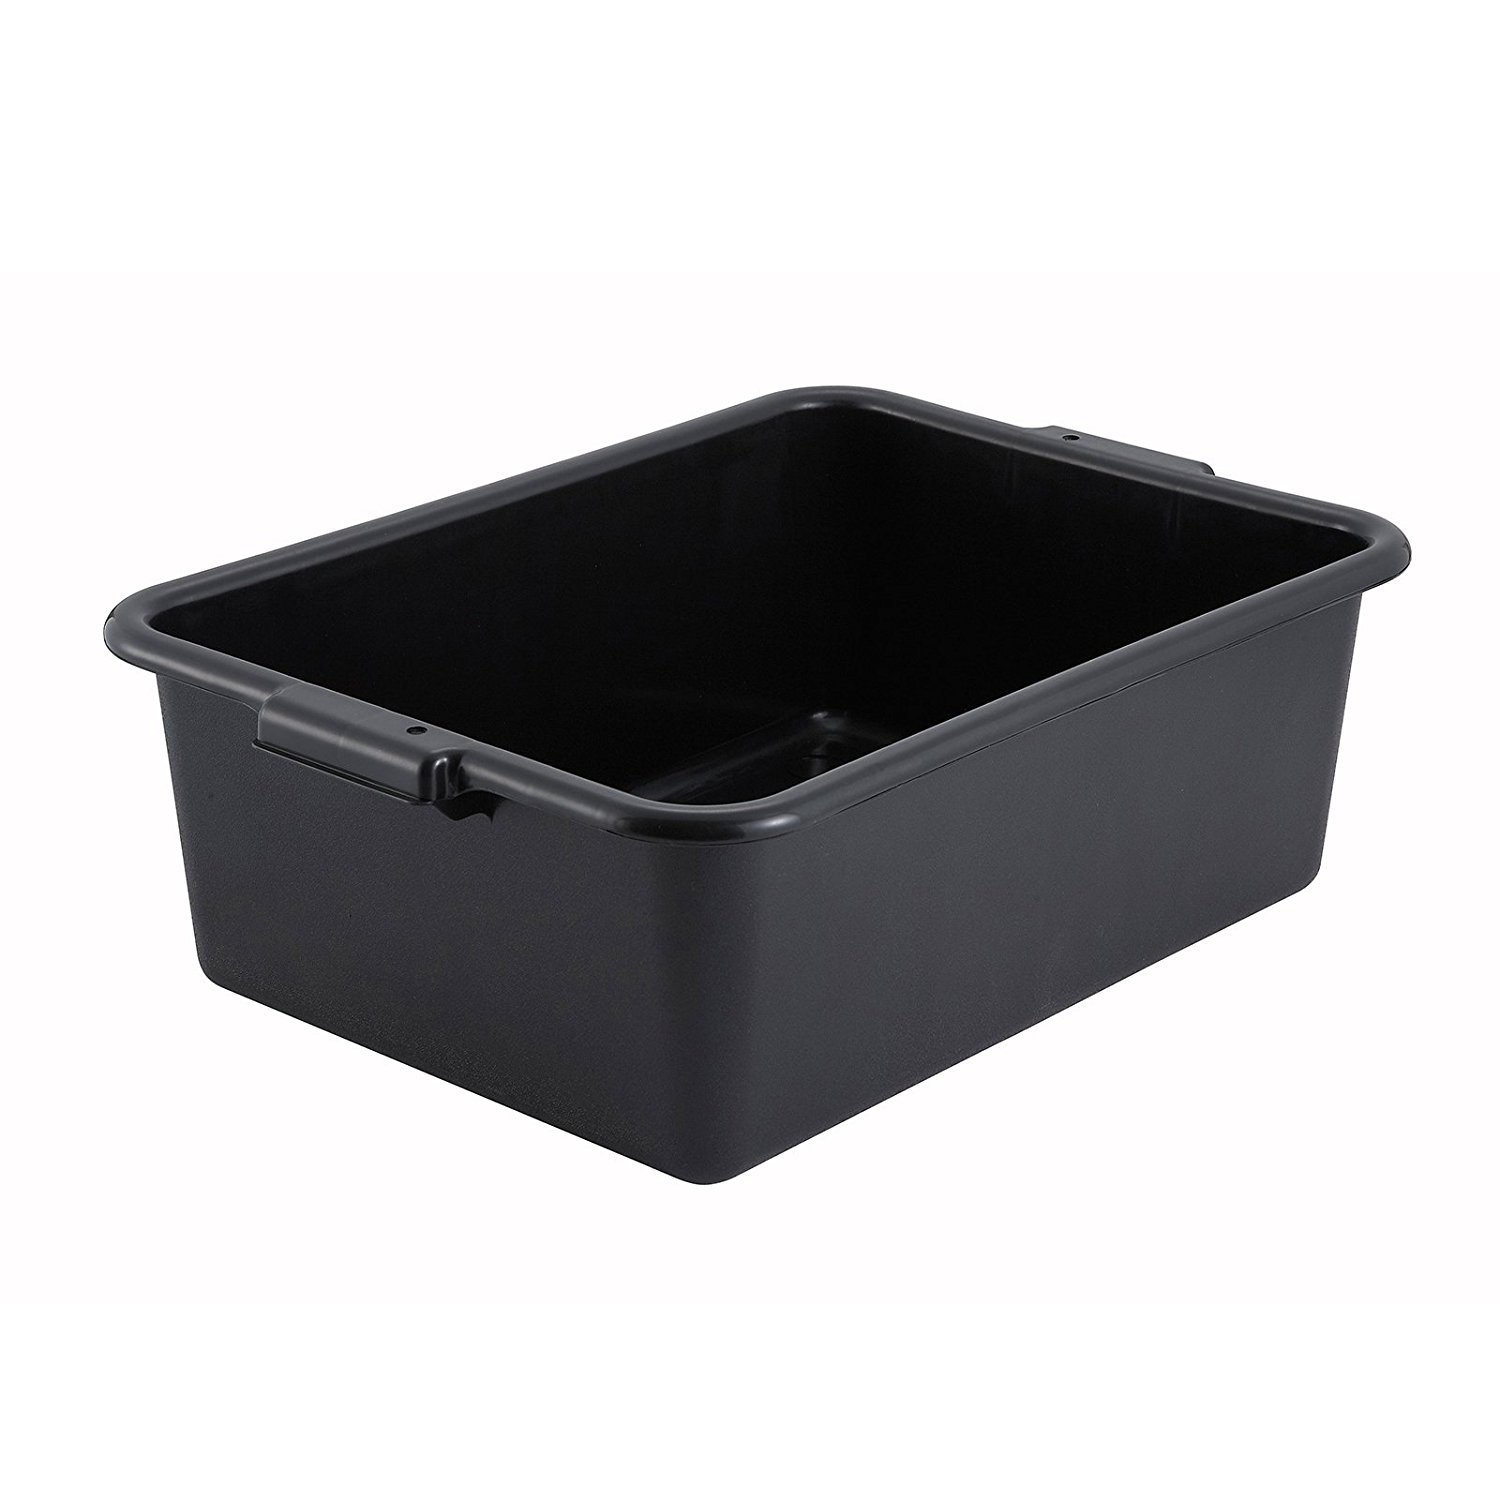 black bins ebay restaurant pk itm x tub bus polypropylene box flatware tubs s